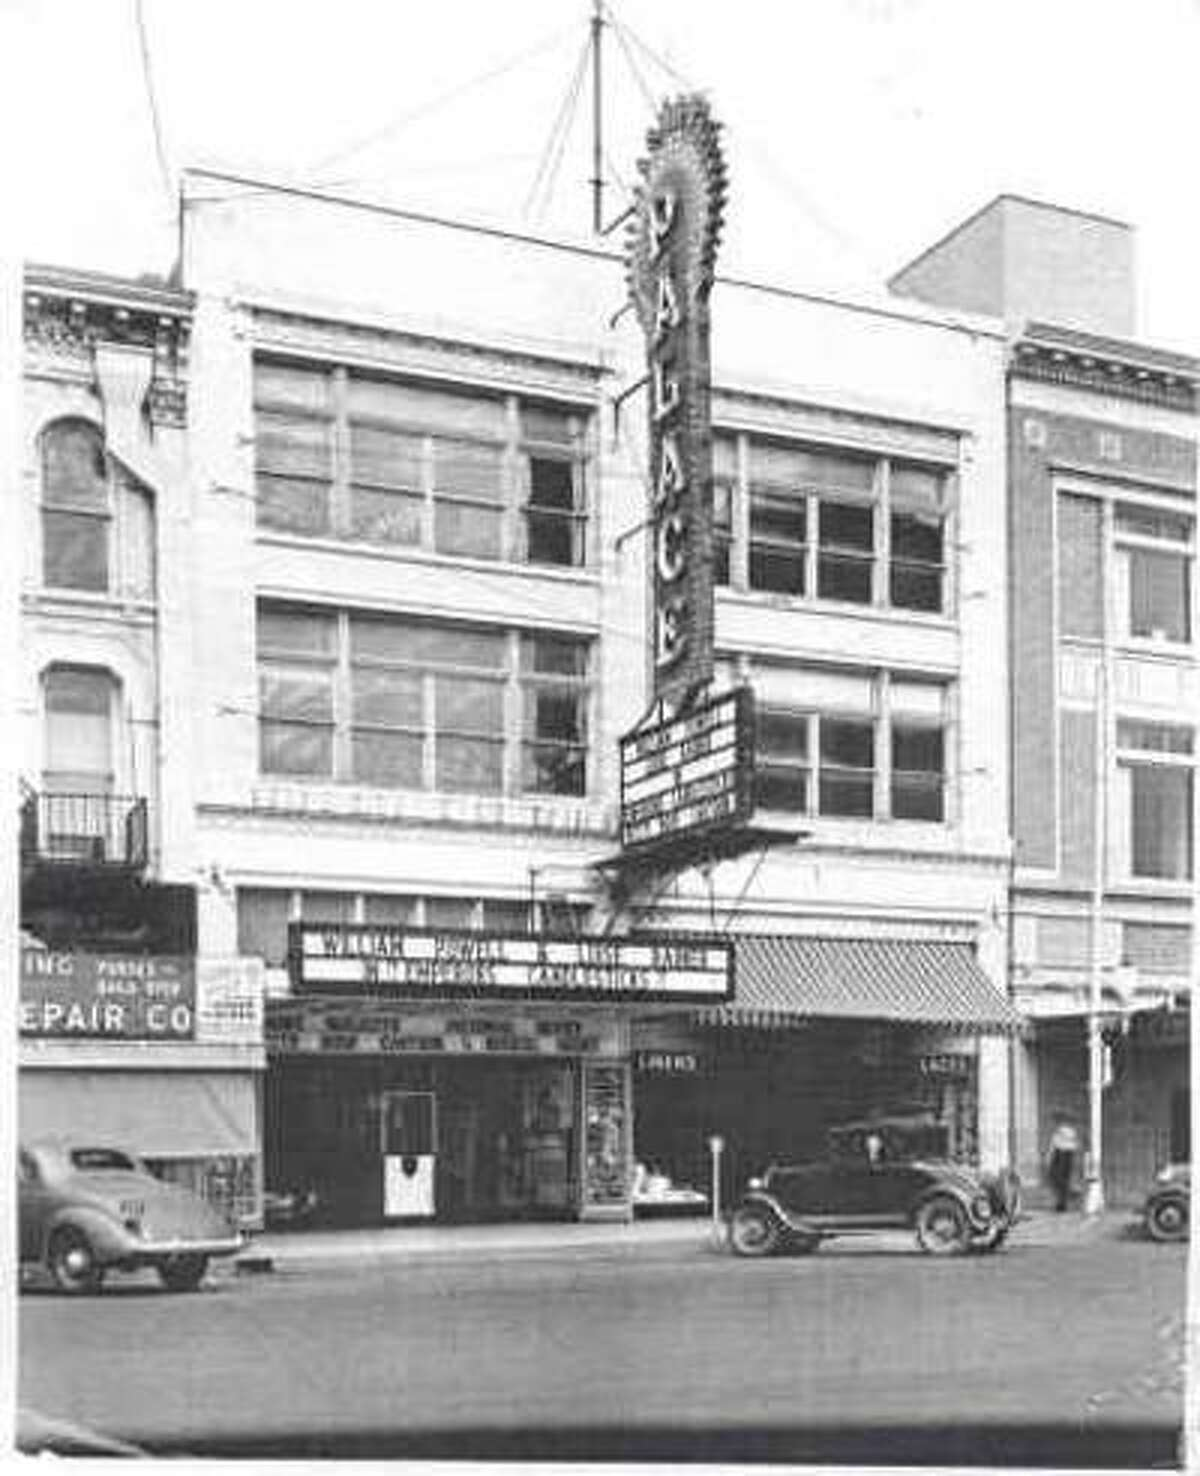 The Palace Theater opened in 1923 but was torn down in 1954.